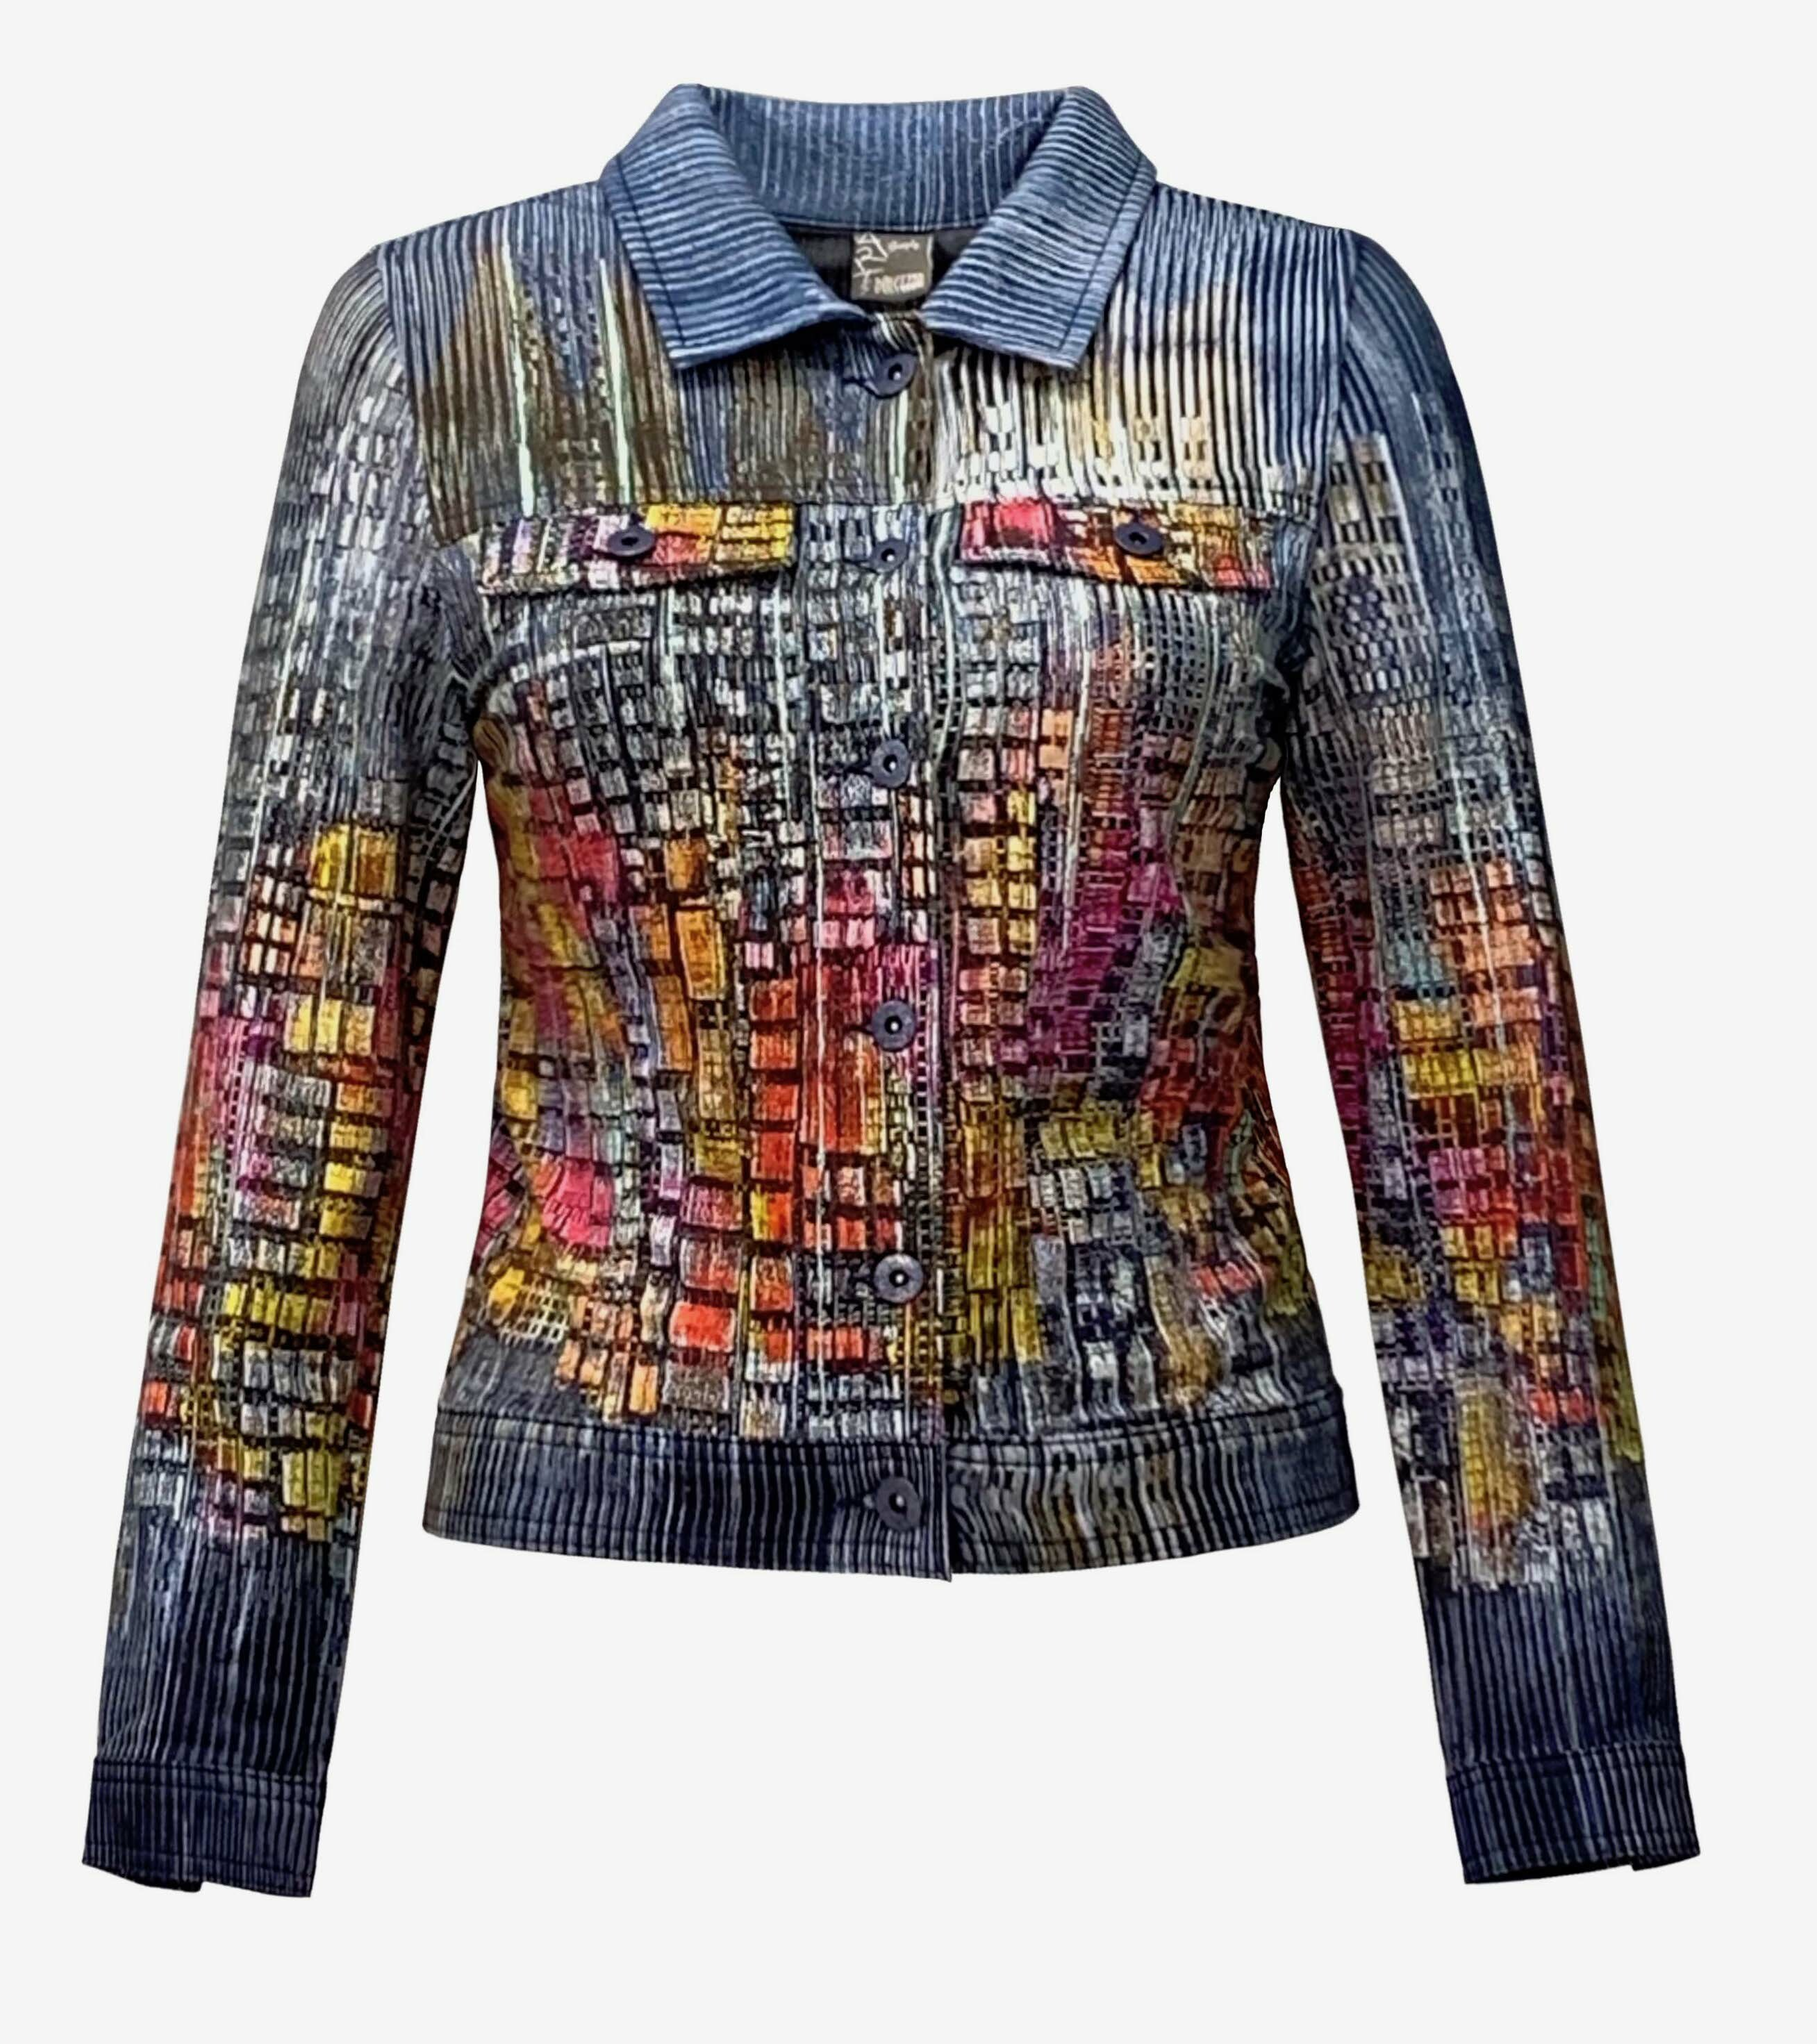 Simply Art Dolcezza: Papillons Of The Night Abstract Art Soft Denim Jacket (1 Left!) Dolcezza_SimplyArt_59735_N